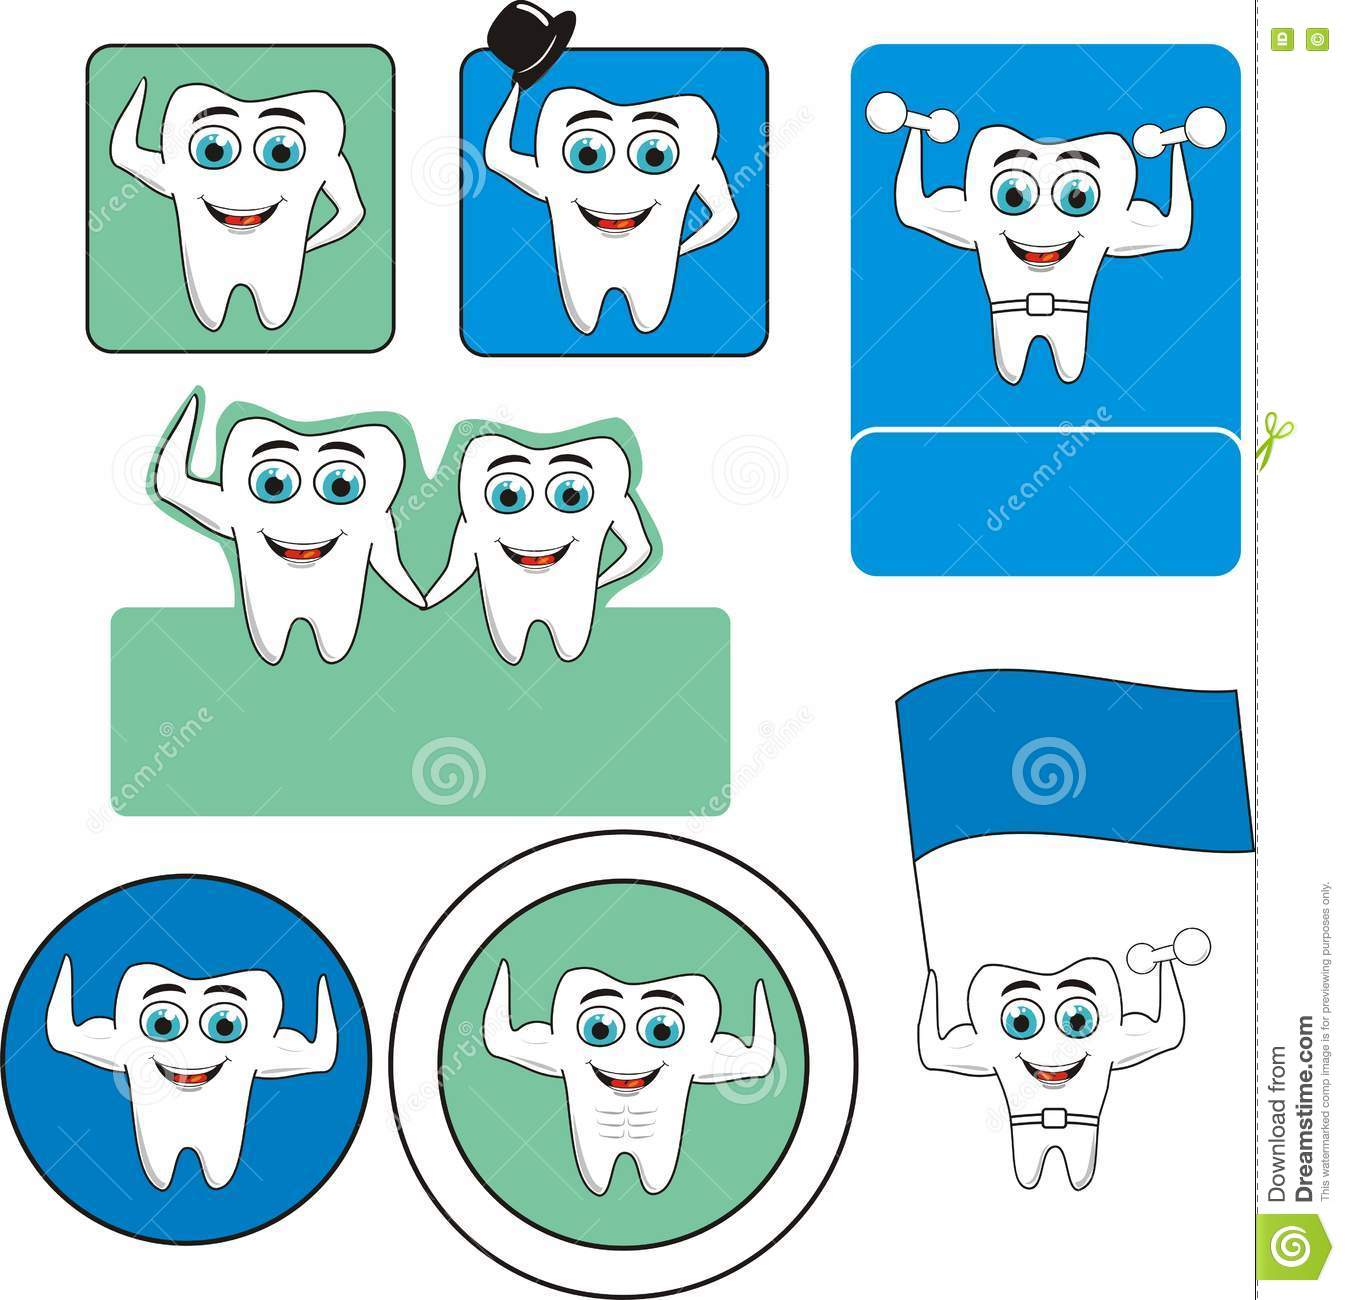 Tooth Logo Stock Vector. Illustration Of Element, Curve